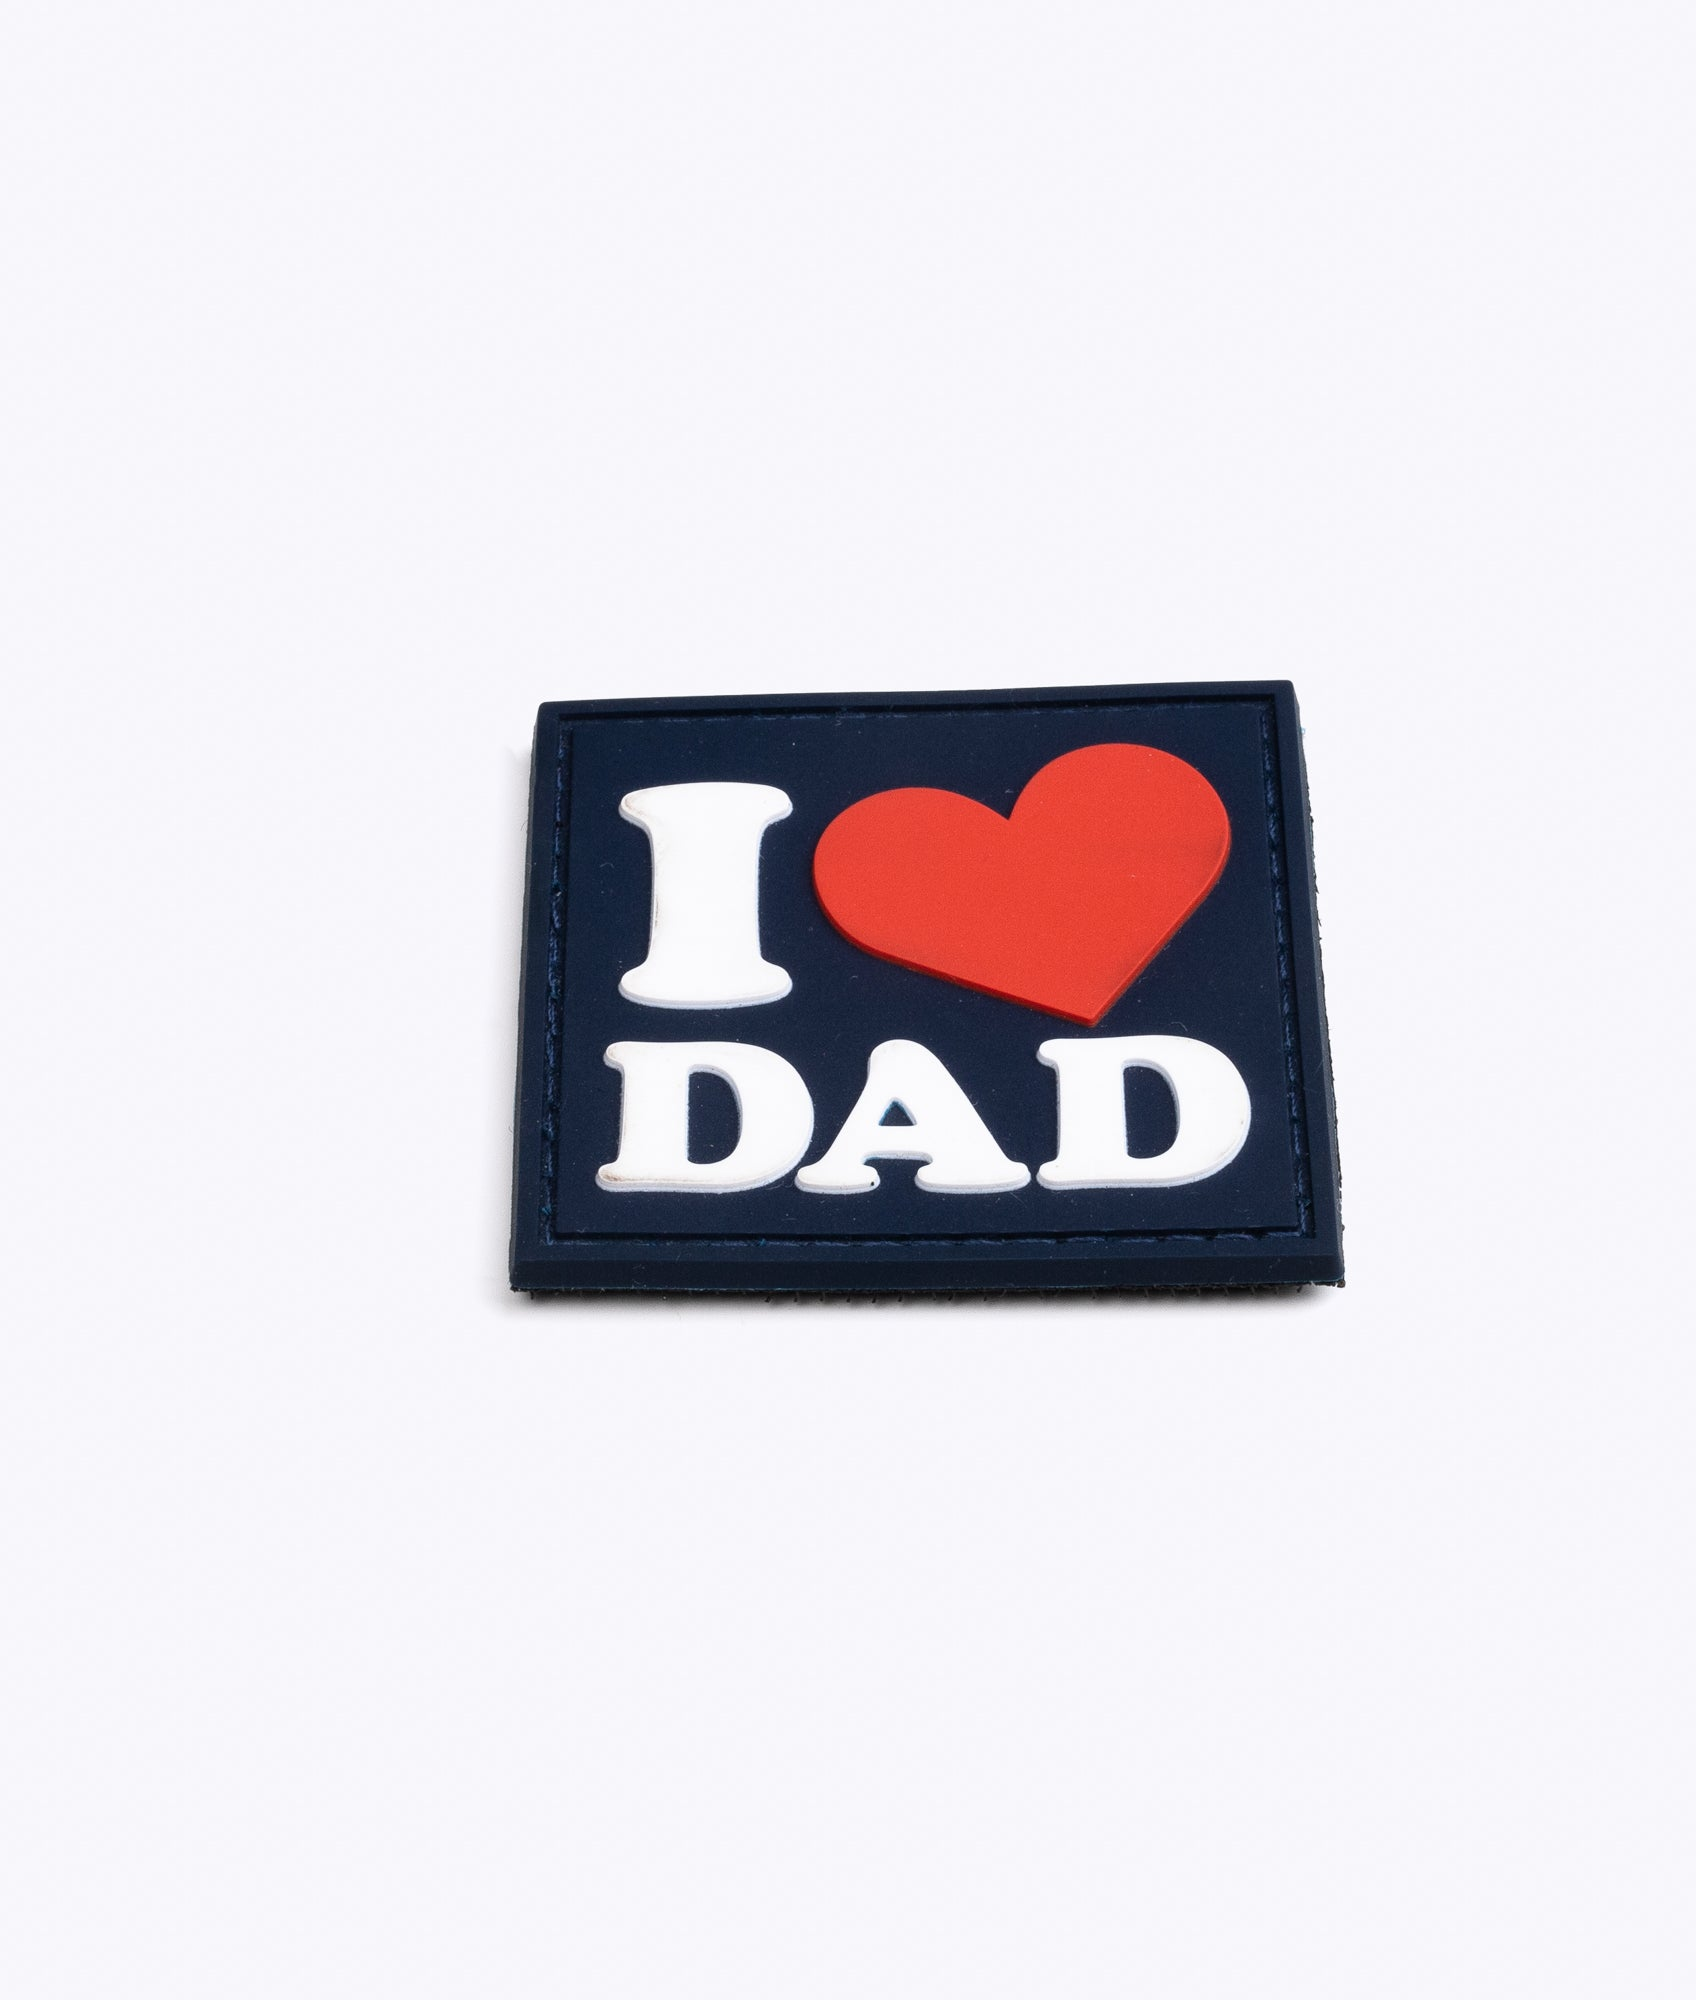 'I ❤️ DAD' PVC Patch